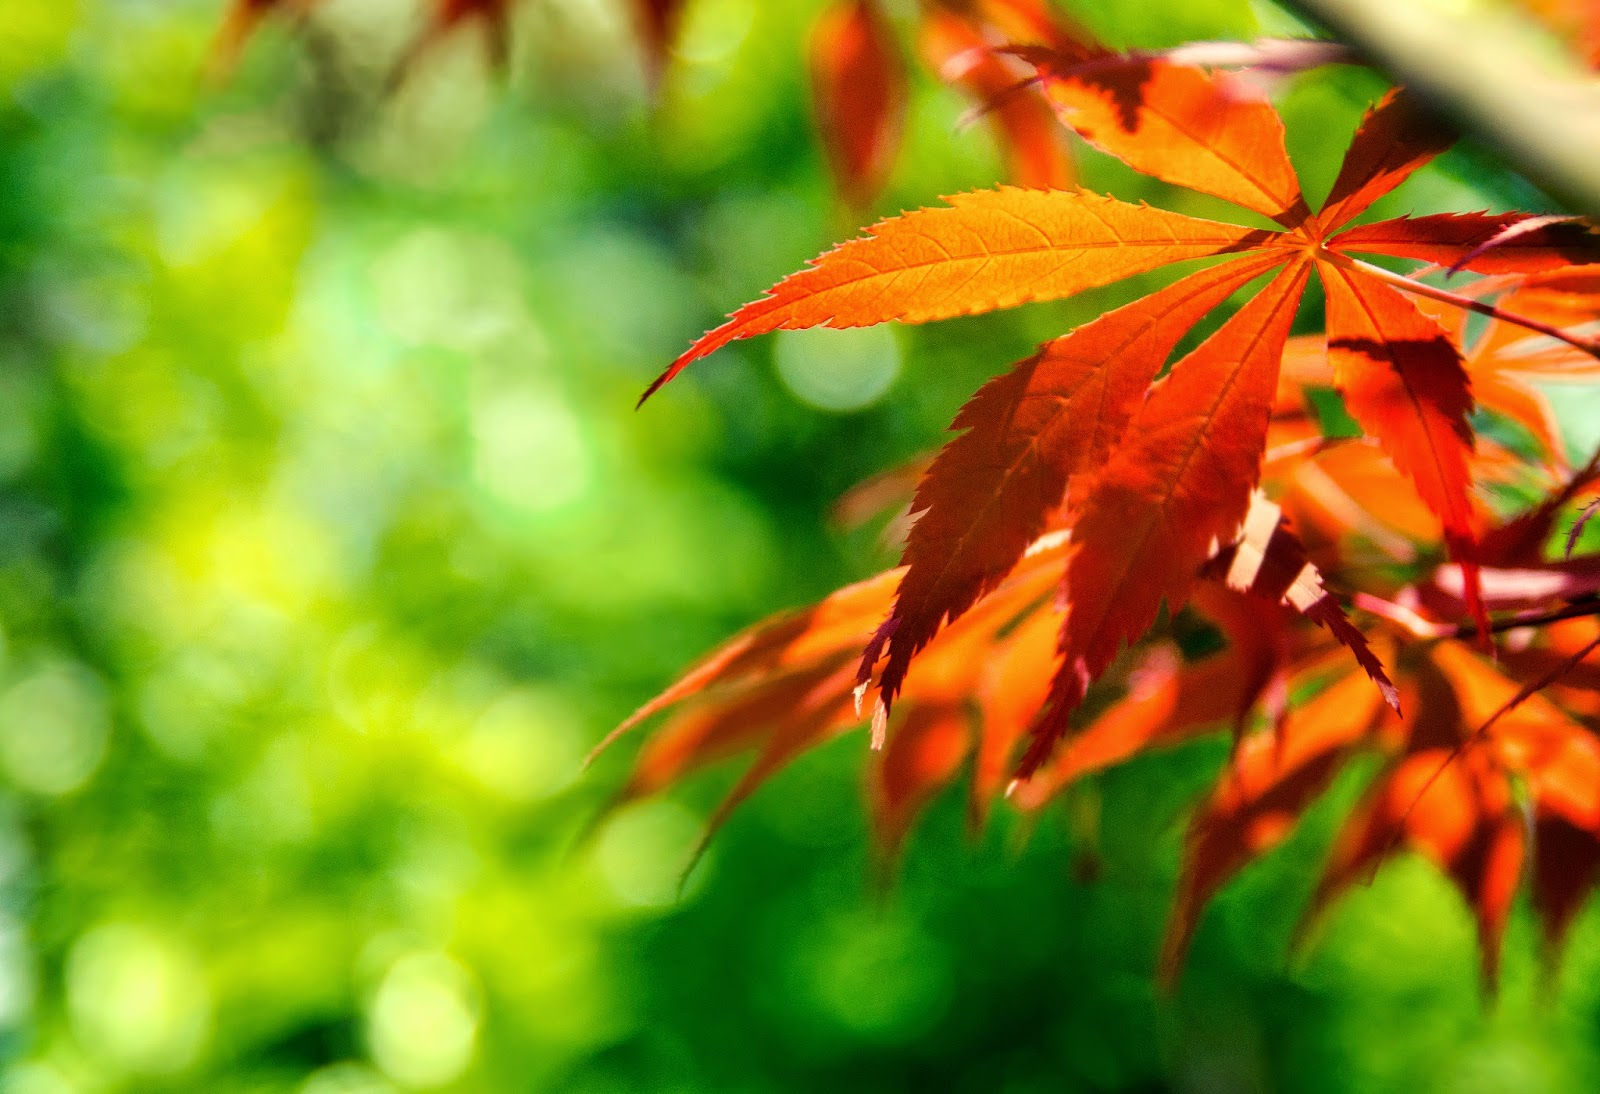 D Hd Wallpapers 1366x768 100 Refreshing Leaf Wallpaper Most Beautiful Places In